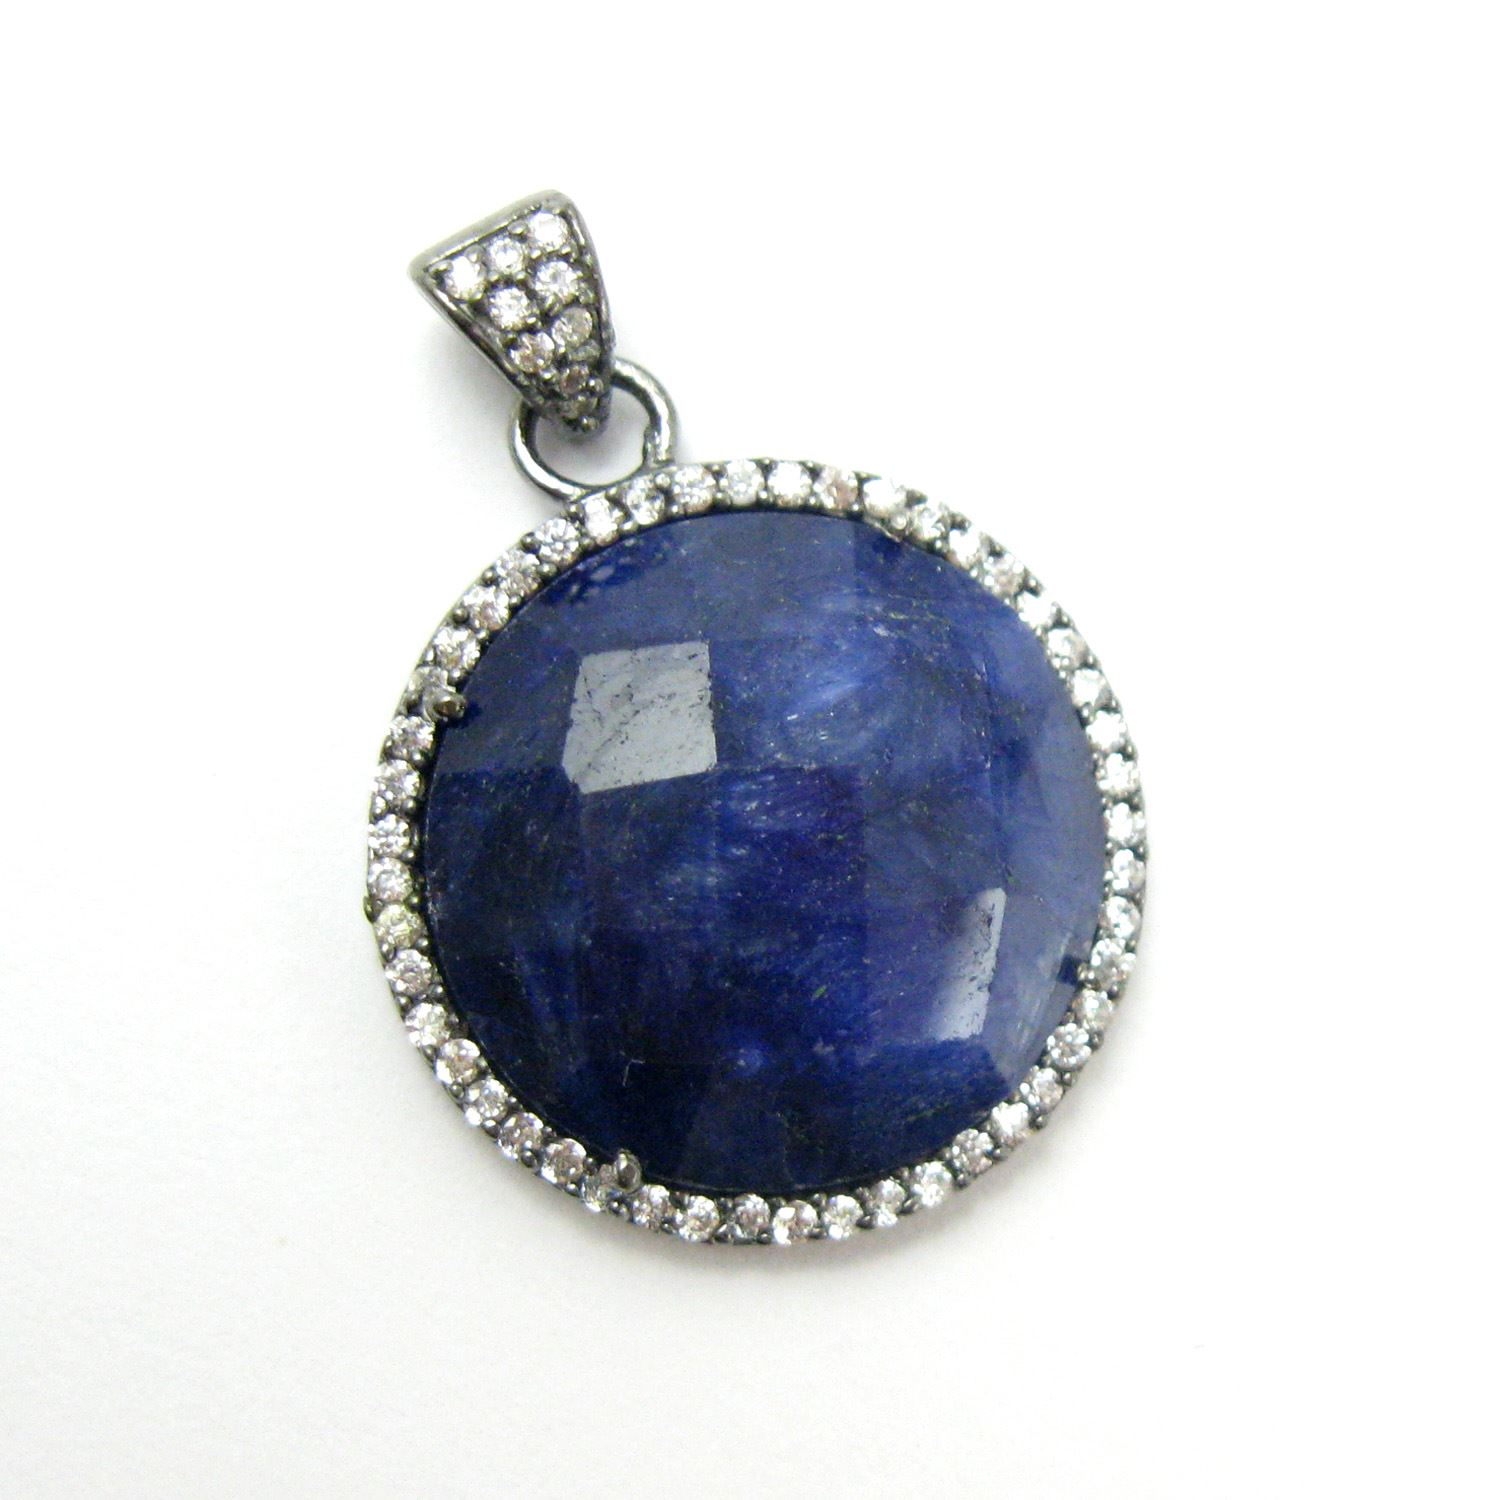 Oxidized Sterling Silver Pave Bezel Gemstone Pendant - Cubic Zirconia Pave Setting -  Round Faceted Stone-Blue Sapphire Dyed- 21mm